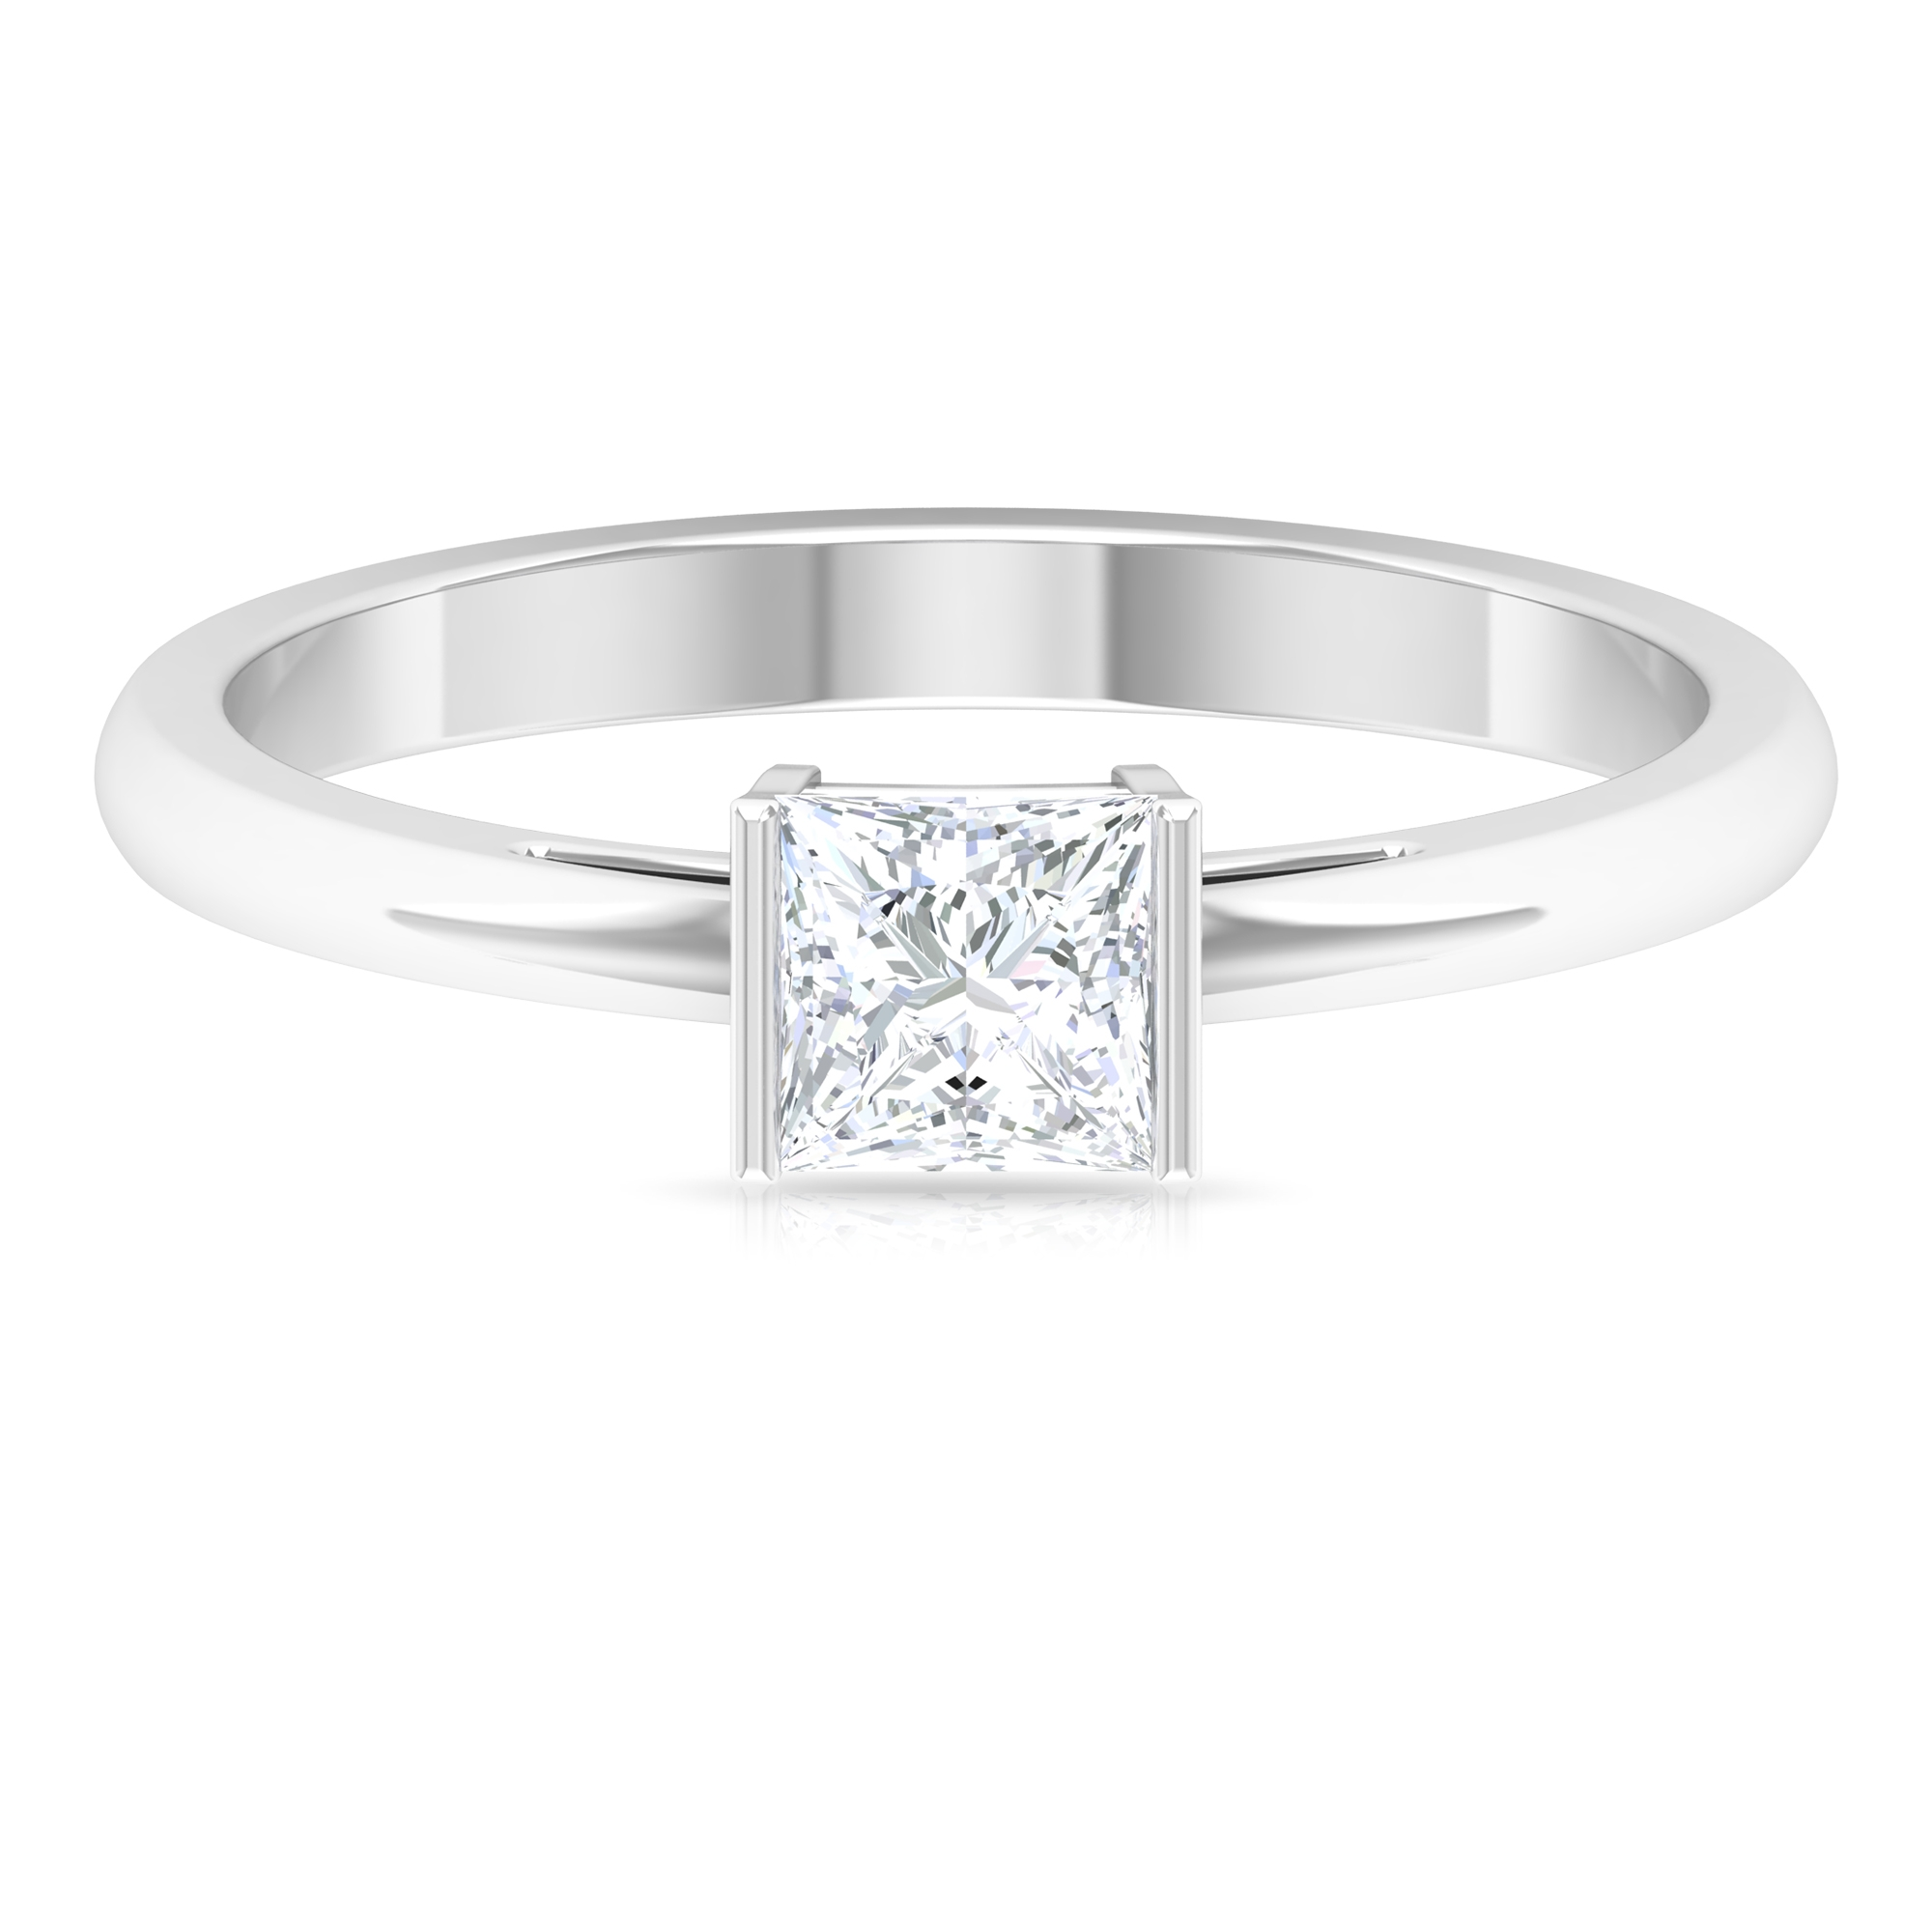 4.5X4.5 MM Princess Cut Diamond Solitaire Engagement Ring For Women in Bar Setting